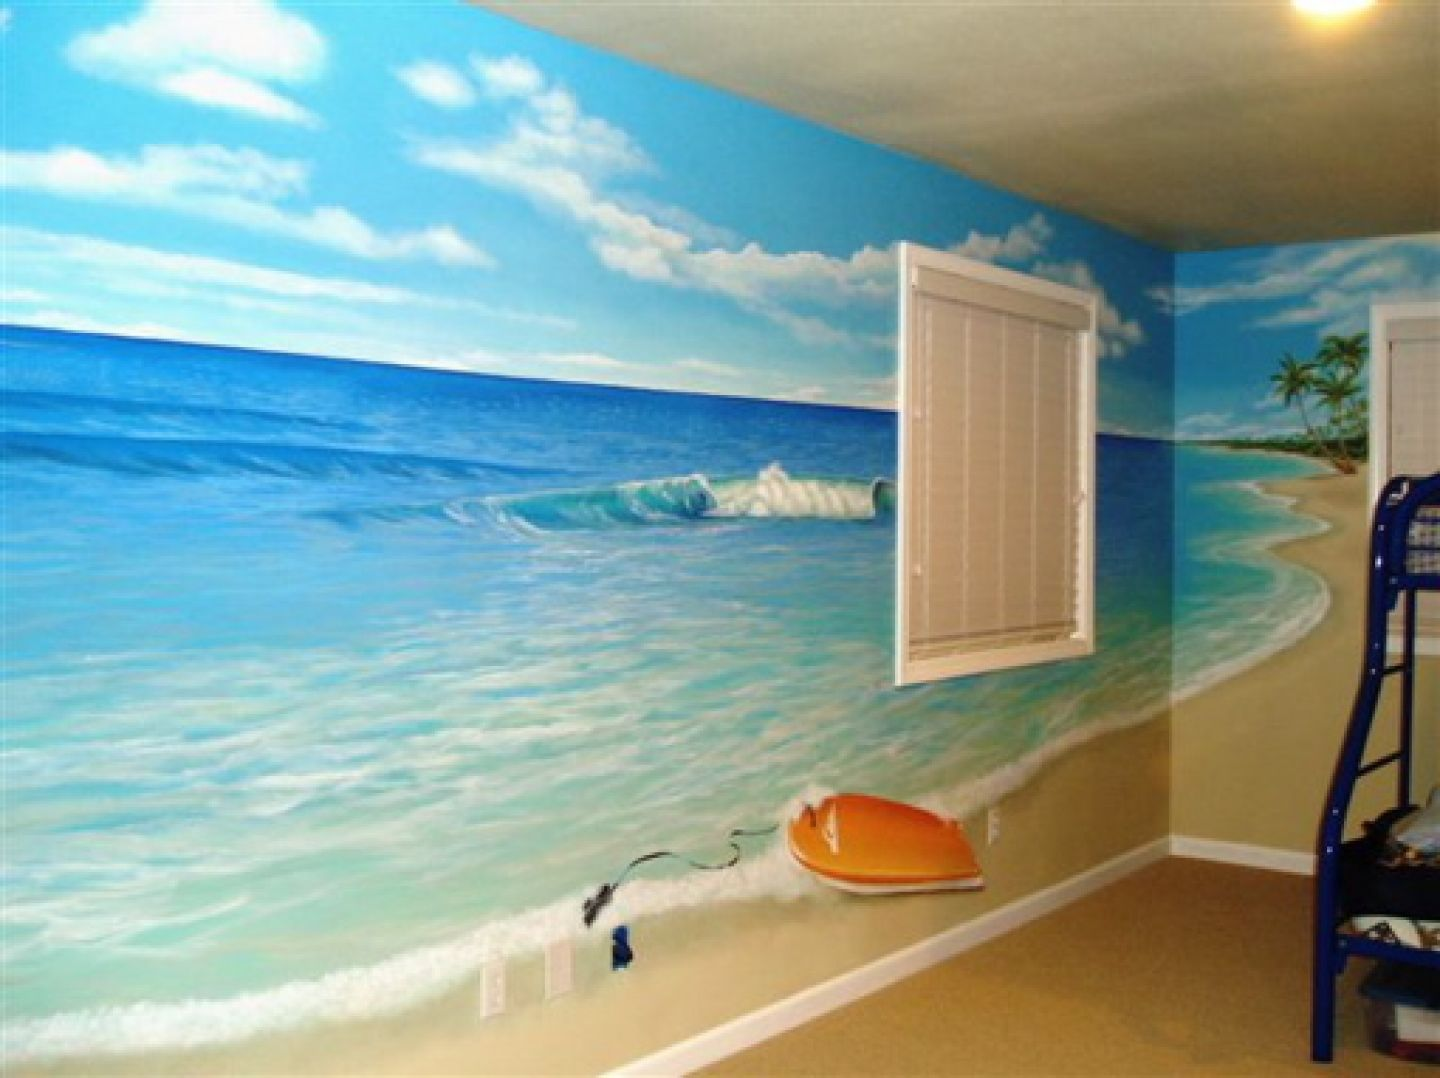 beach mural ideas to paint on divider wall tags beach beach bathroom themes beach bedroom - Beach Theme Decor